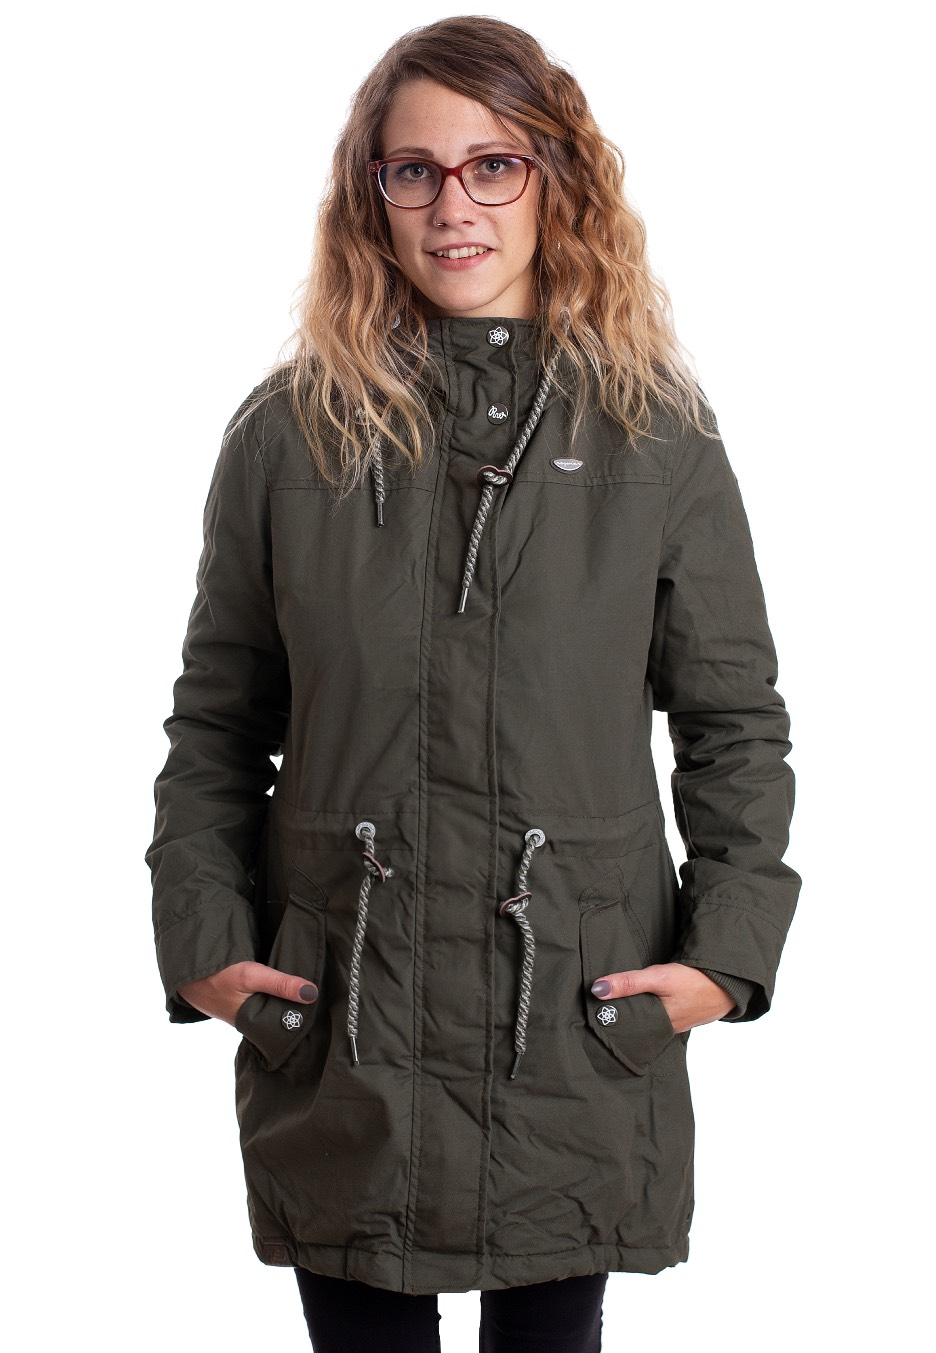 Jacken - Ragwear Elba Coat B Olive Jacken  - Onlineshop IMPERICON